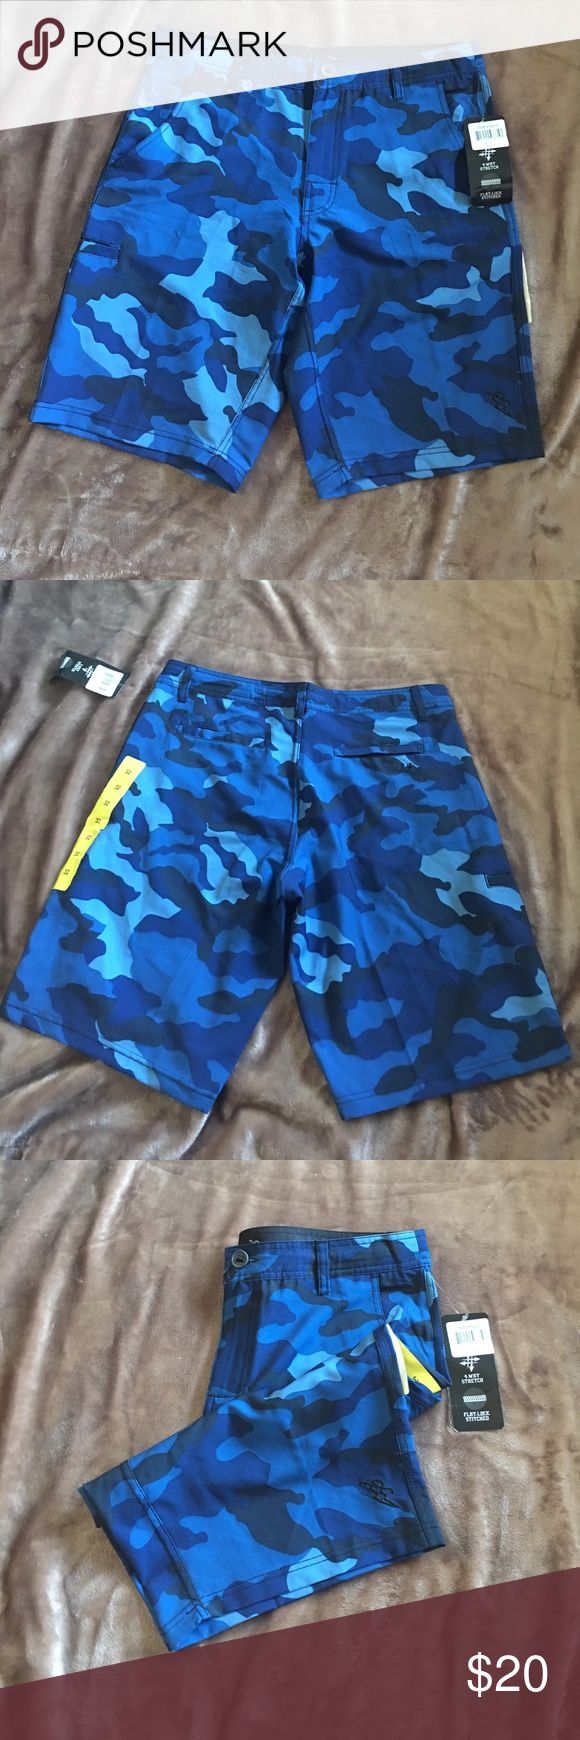 """Surf shorts Brand new never worn surf shorts. Can be used to swim or as casual shorts. Has pockets at sides and on back. Button and zipper closure. Also has drawstring on the inside. Lightweight and cool fabric. Brand is """"Da Hui"""" but listed as Volcom for exposure. Volcom Shorts Hybrids"""